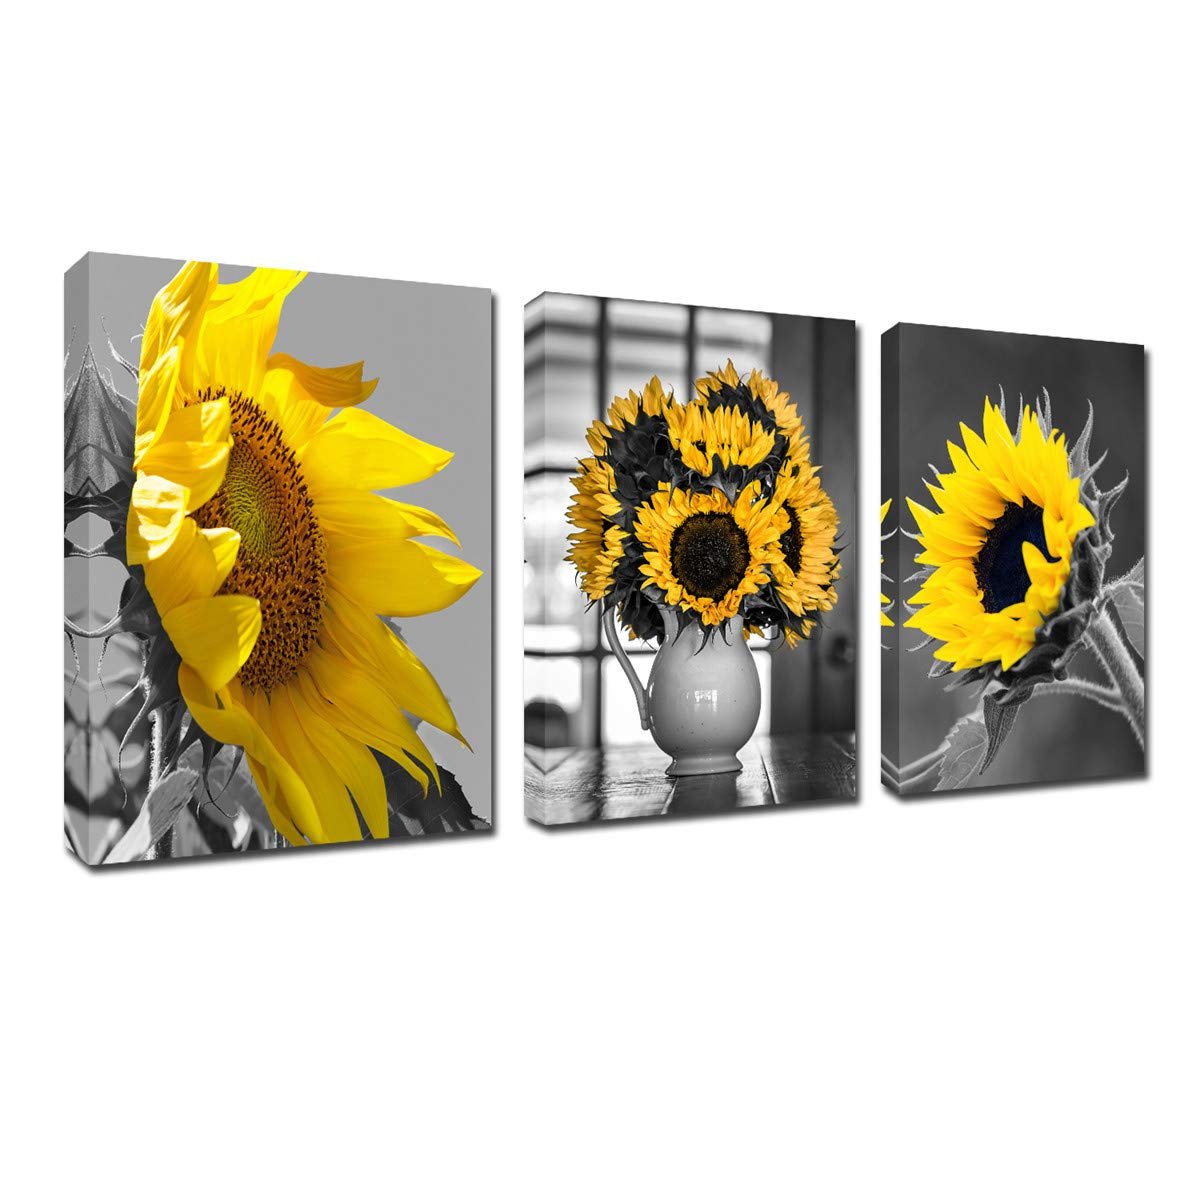 Black and White Sunflower Wall Art - Simple Life Flower Framed Artwork Wall Decor 12''x16'' 3 Piece Canvas Prints Modern Floral Painting for Living Room Decoration Home Kitchen Poster Ready to Hang